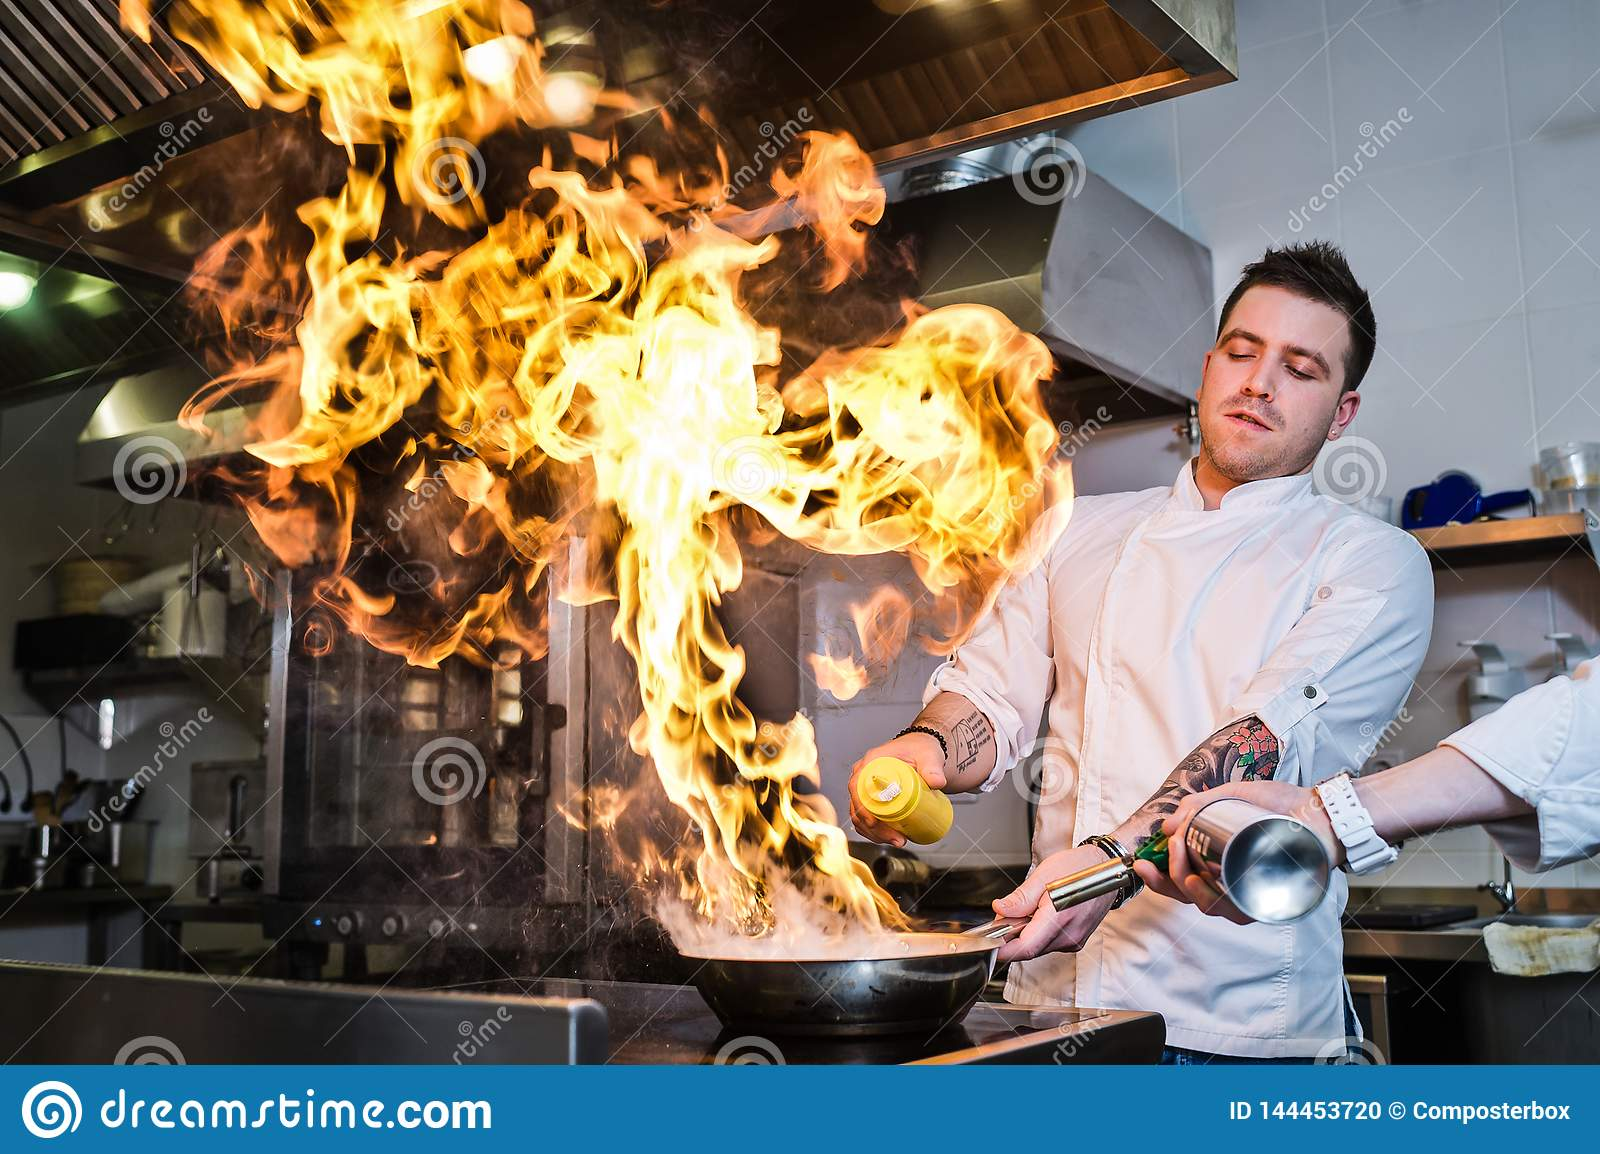 Russia, St. Petersburg, 03.17.2019 - chef is making flambe in a restaurant kitchen, dark background.